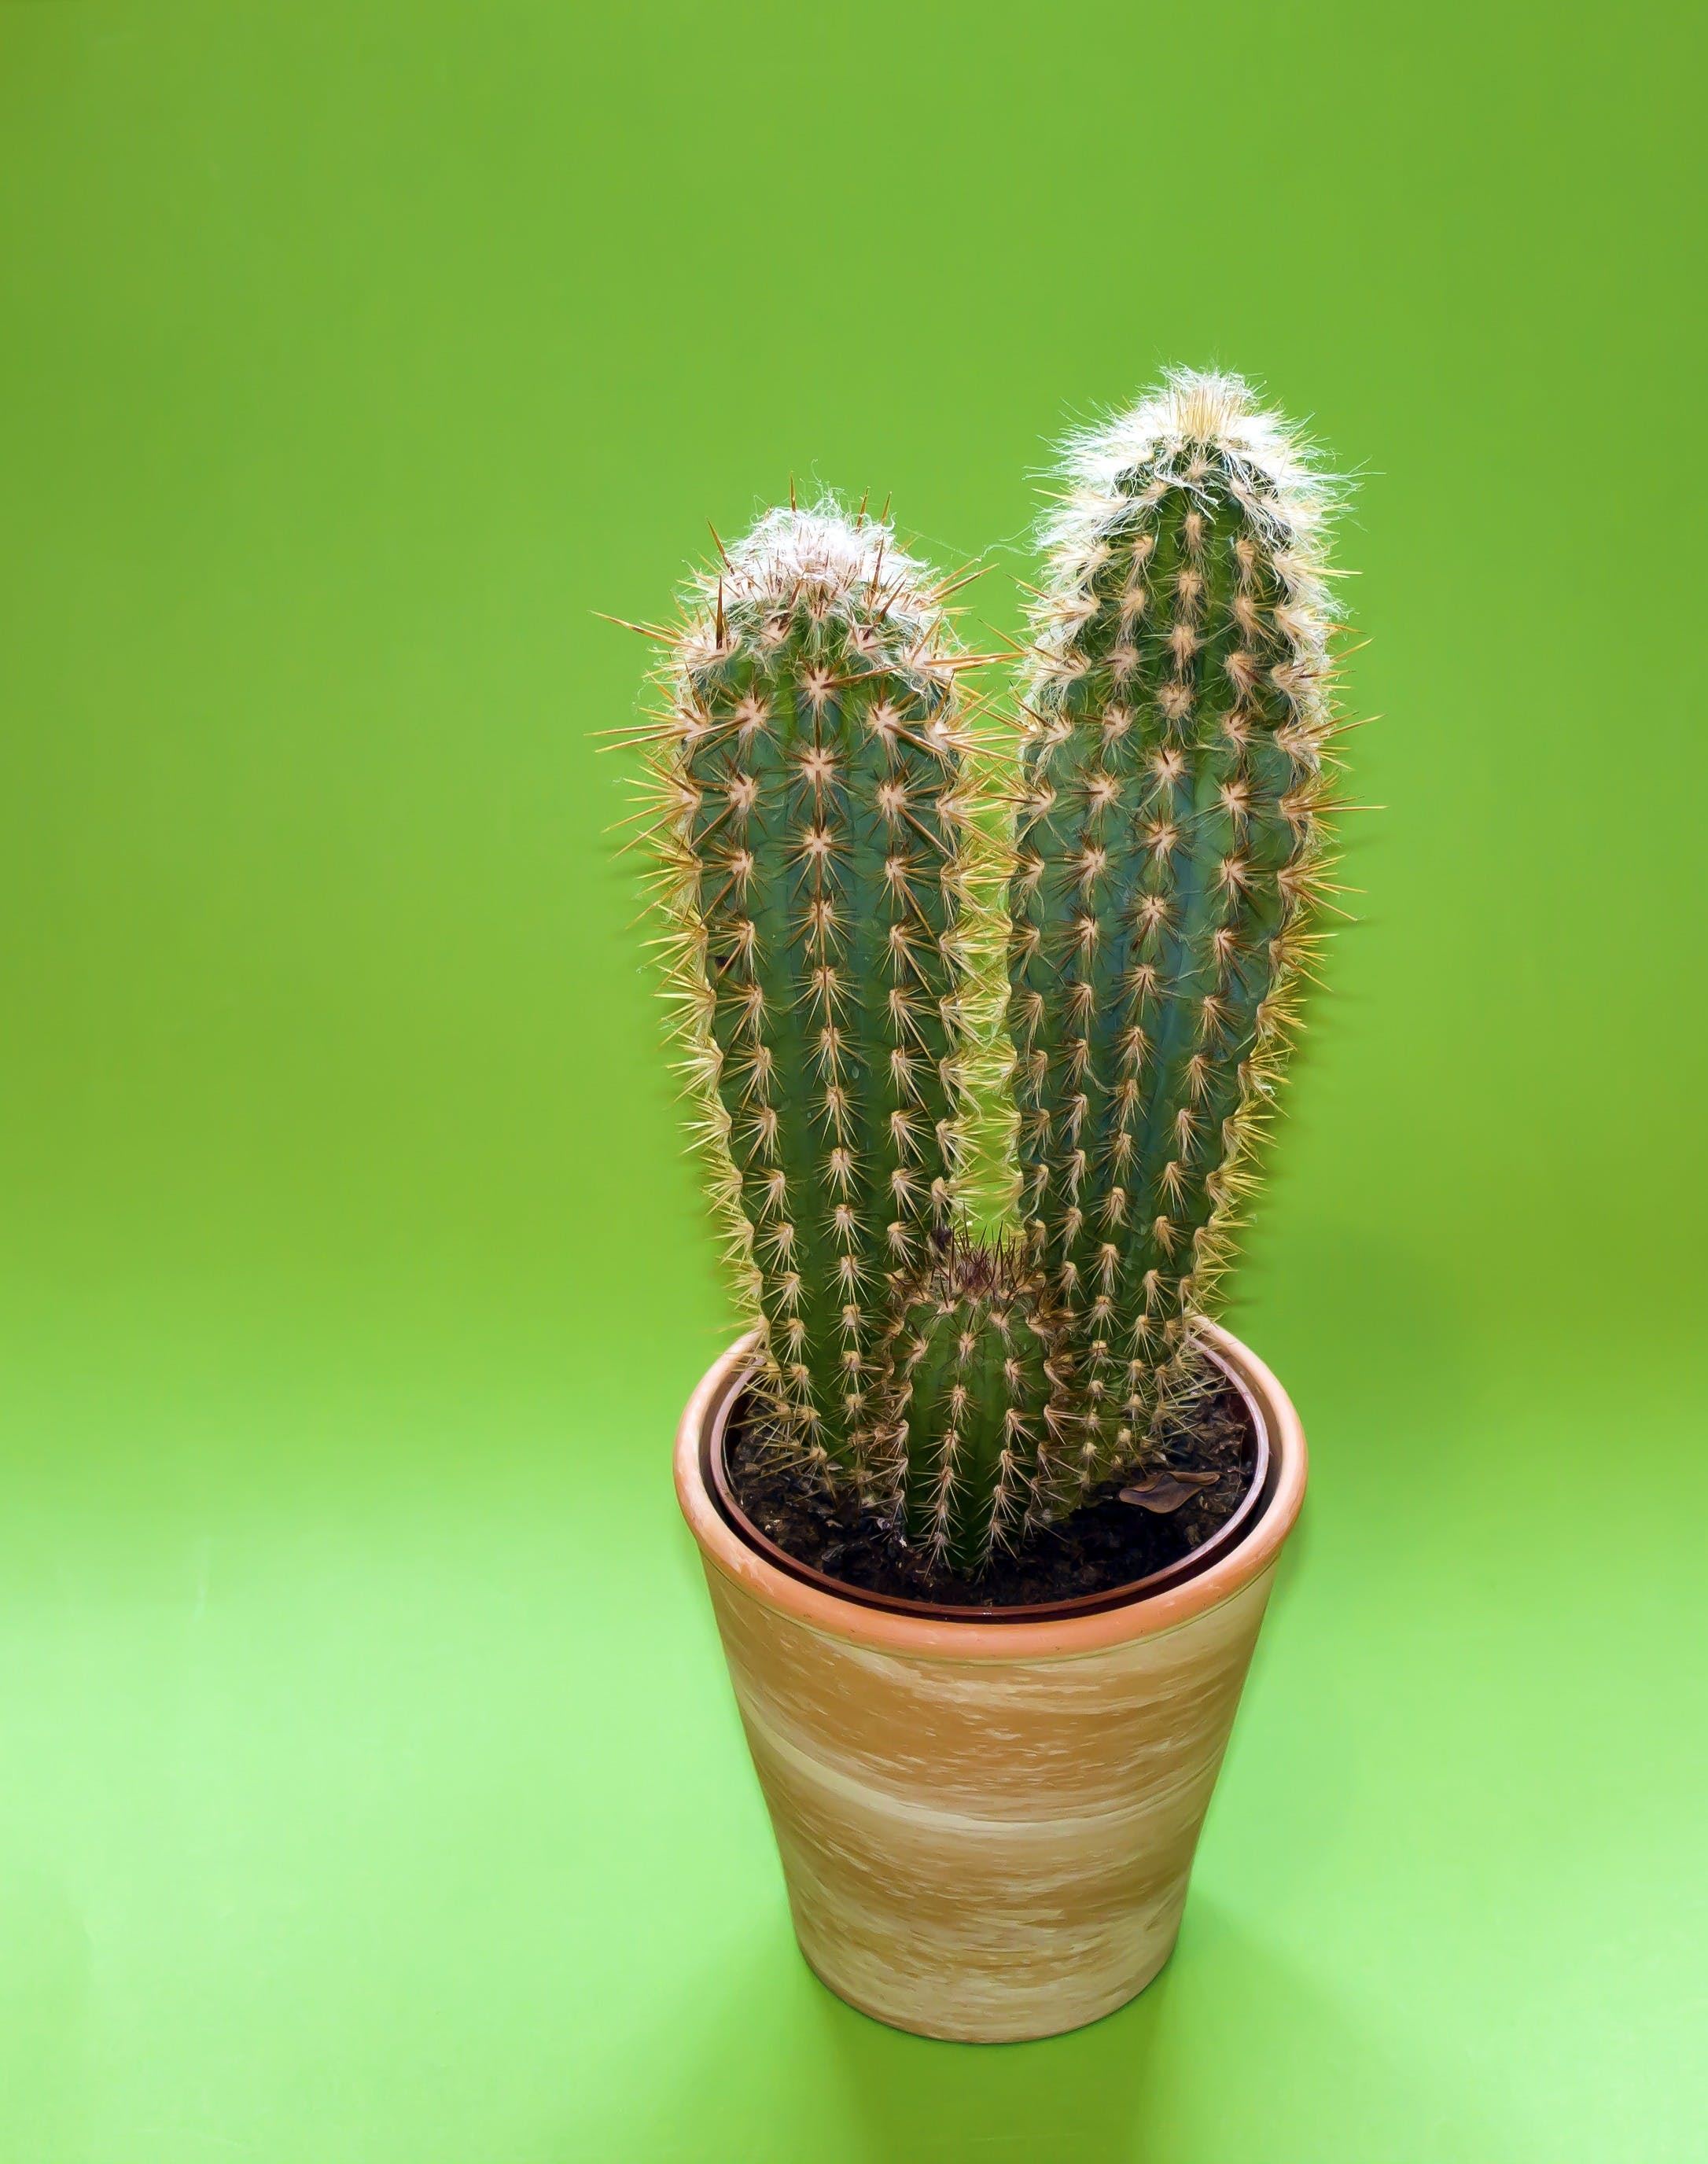 Cactus Plant on Brown Pot